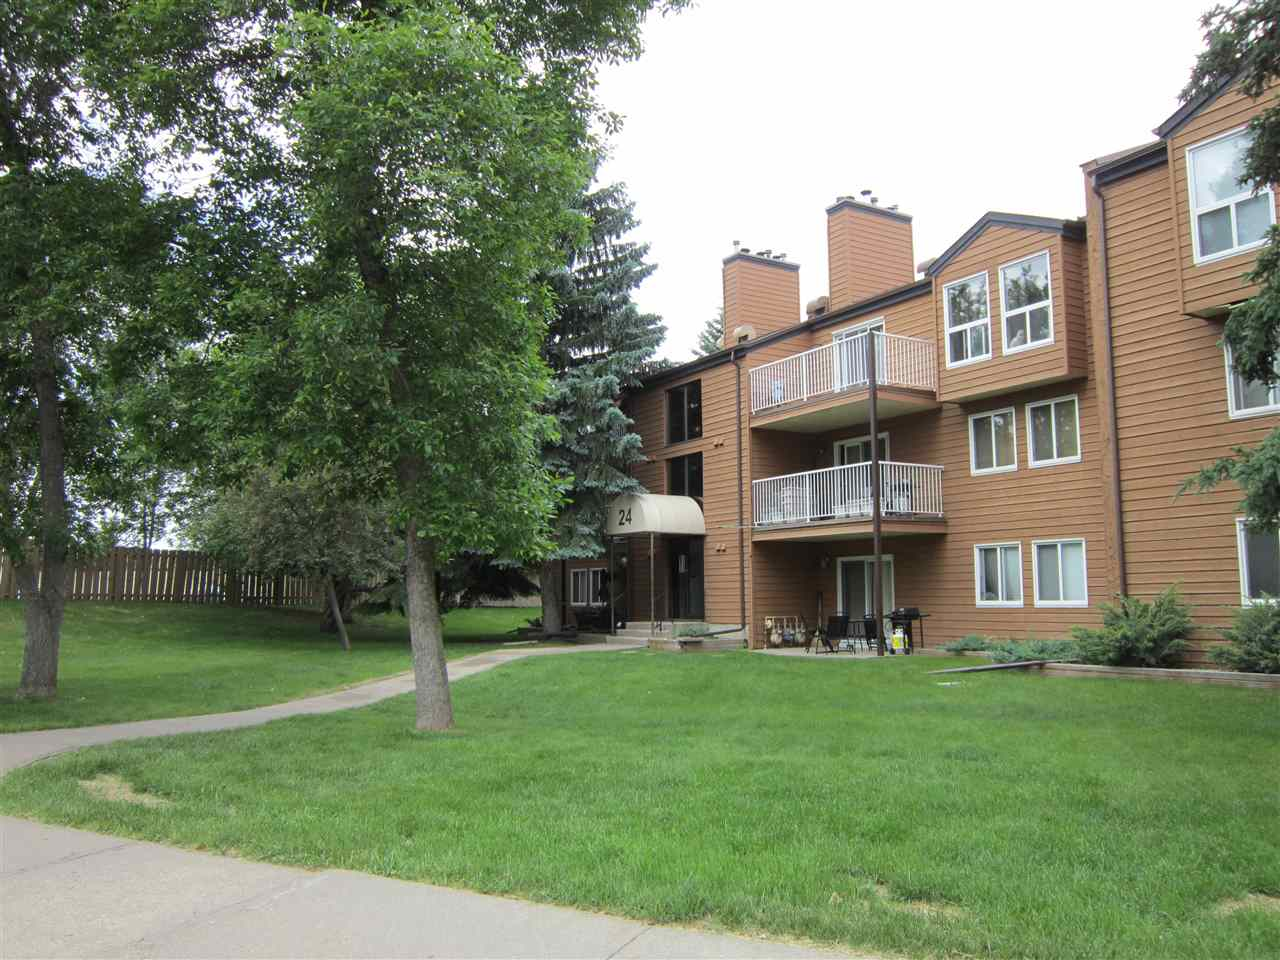 202 24 ALPINE Place, 2 bed, 1 bath, at $134,900